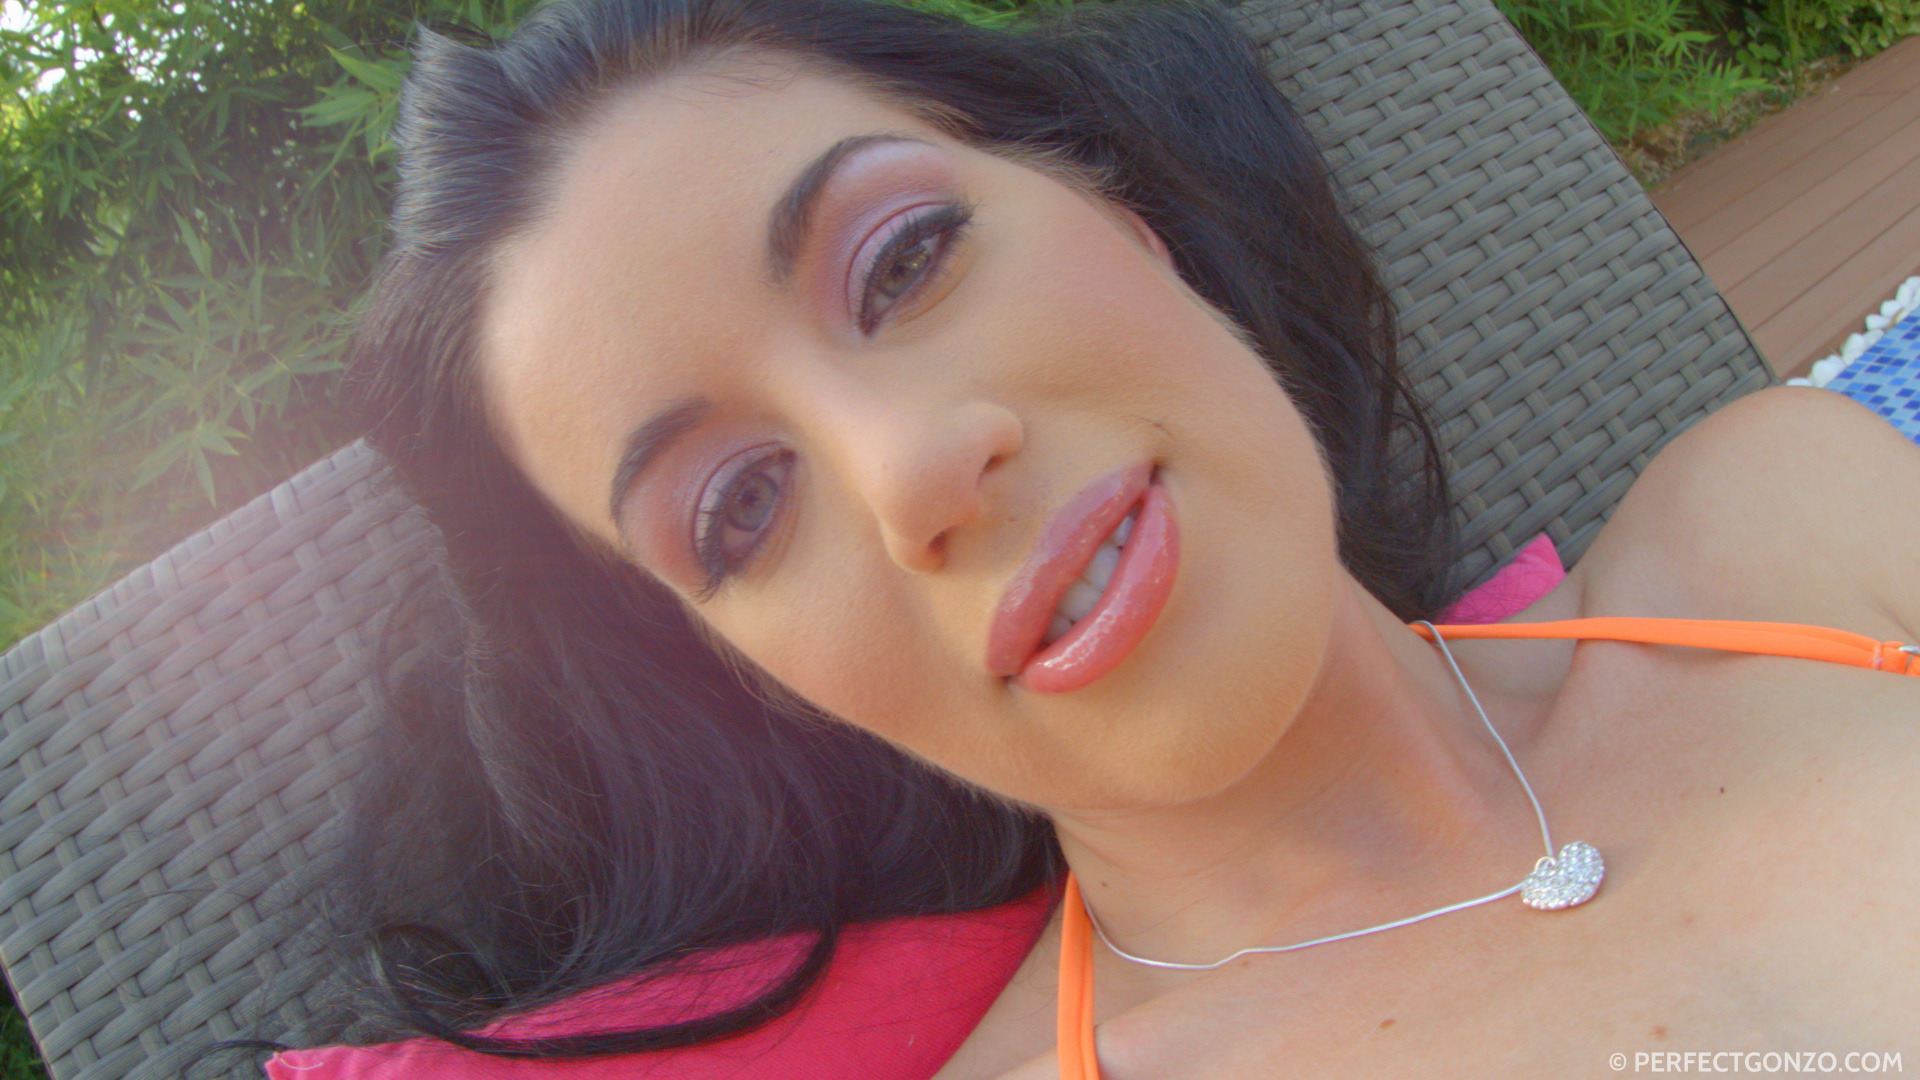 Givemepink beautiful april blue spends a lazy afternoon 4